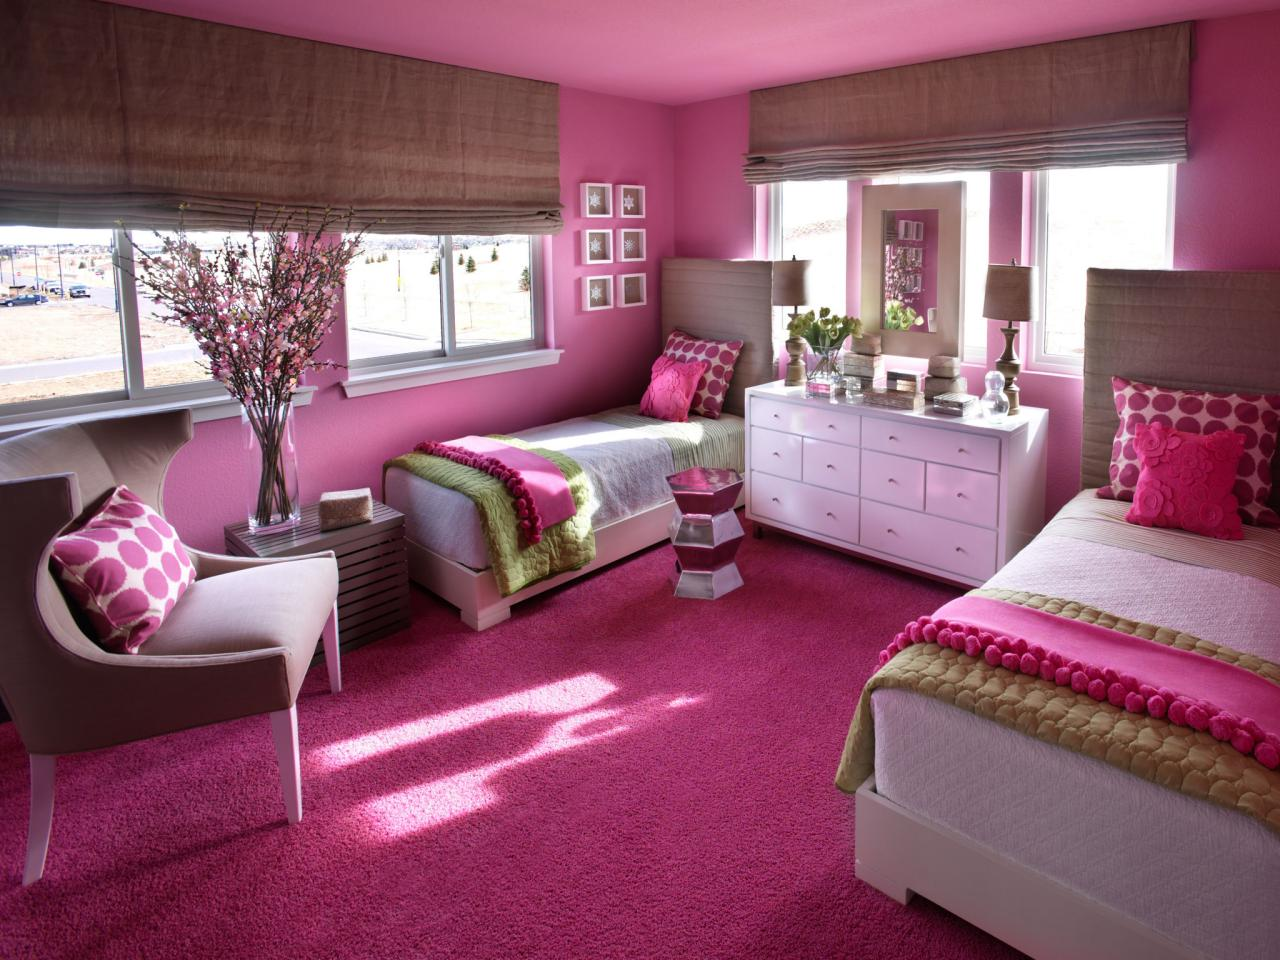 Pink bedroom paint colors - Vibrant Green Bedroom